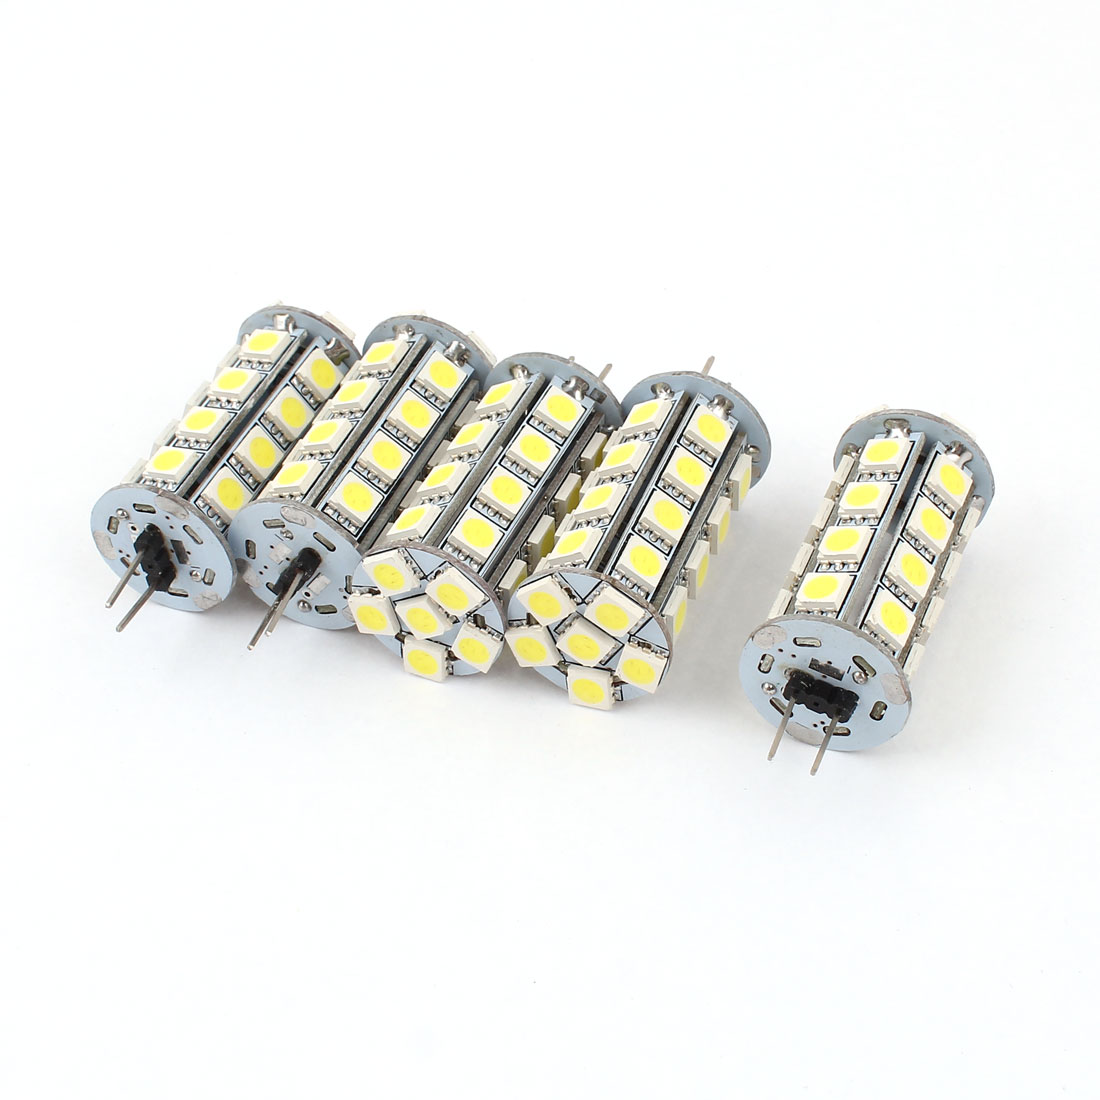 5 x 420-440LM G4 5050 SMD 30 LED Cabinet Marine Boat Light Bulb Lamp White